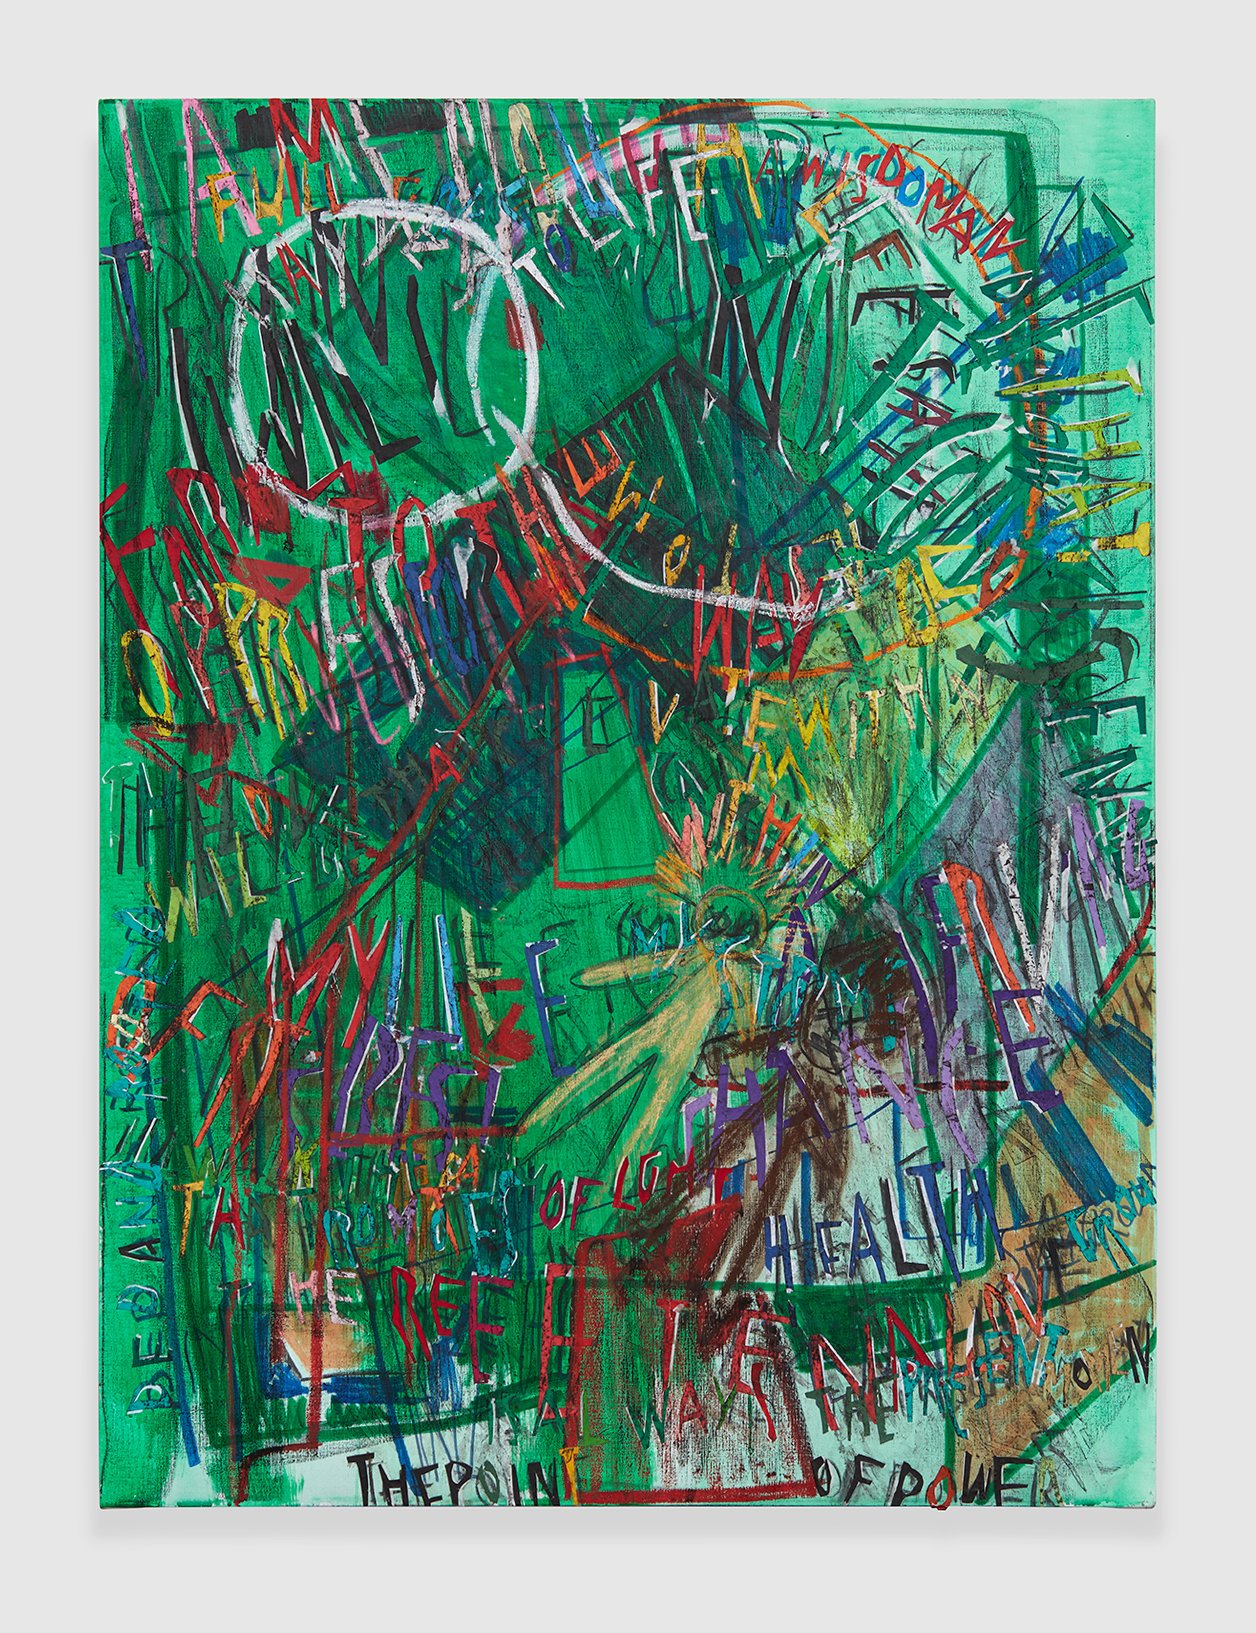 RGB Affirmations (Green) , 2018 acrylic, marker, oil stick, oil, charcoal and paper collage on linen 48 x 36 in - 121,9 x 91,4 cm